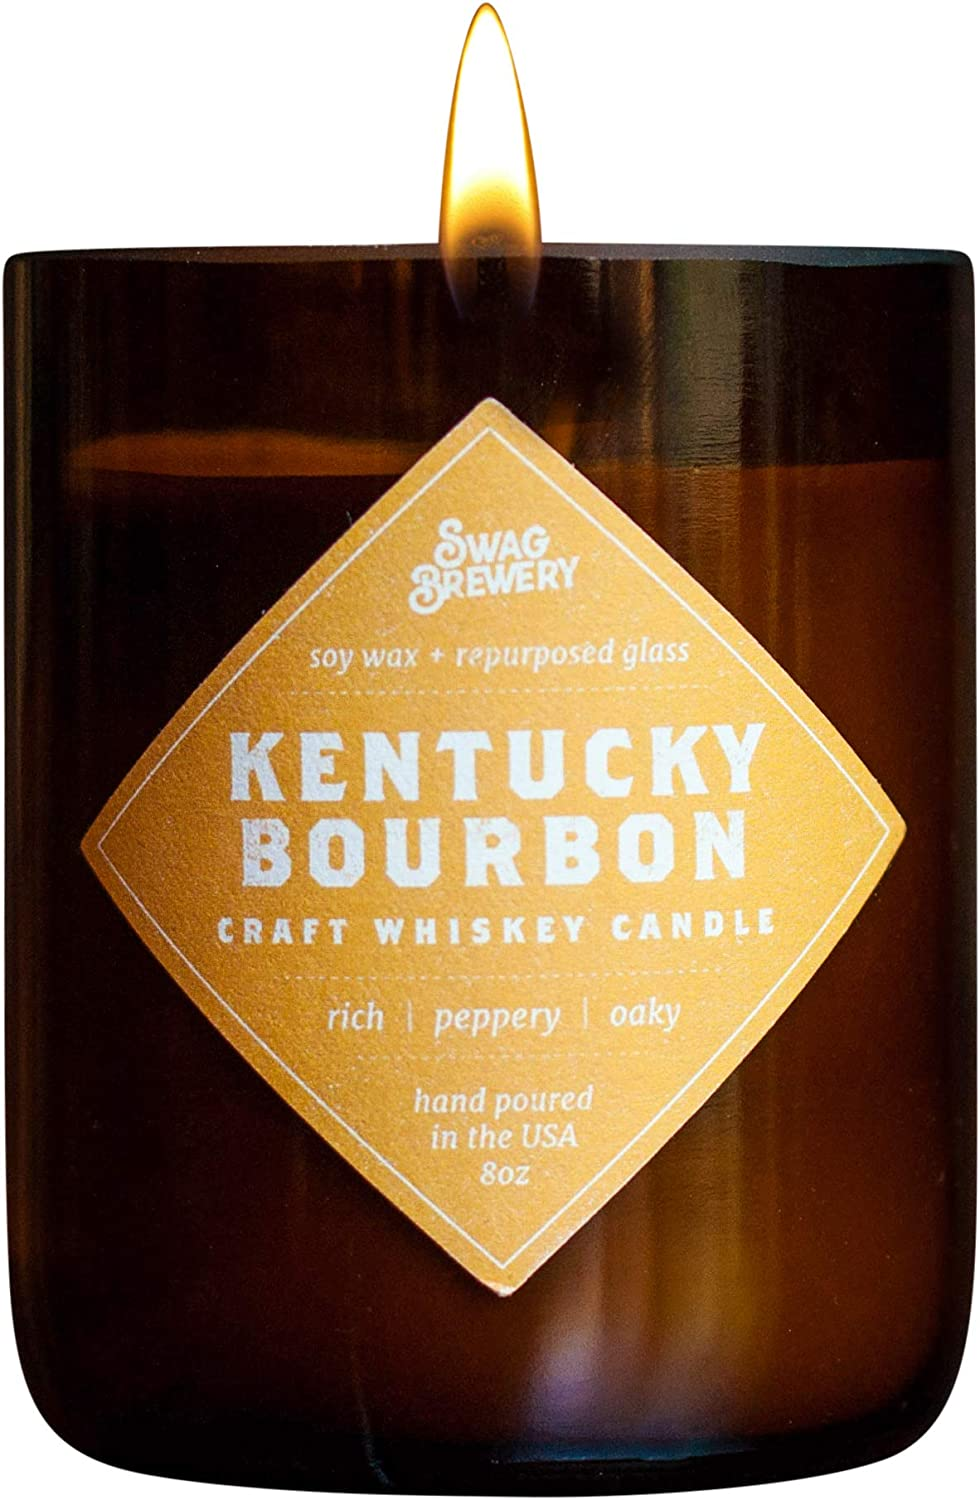 Swag Brewery Kentucky Bourbon Brew Candle - Whiskey Gift, Guy Gift, Scotch, Bourbon, Whisky, Man Cave Beer Bottle CandleMADE in USA